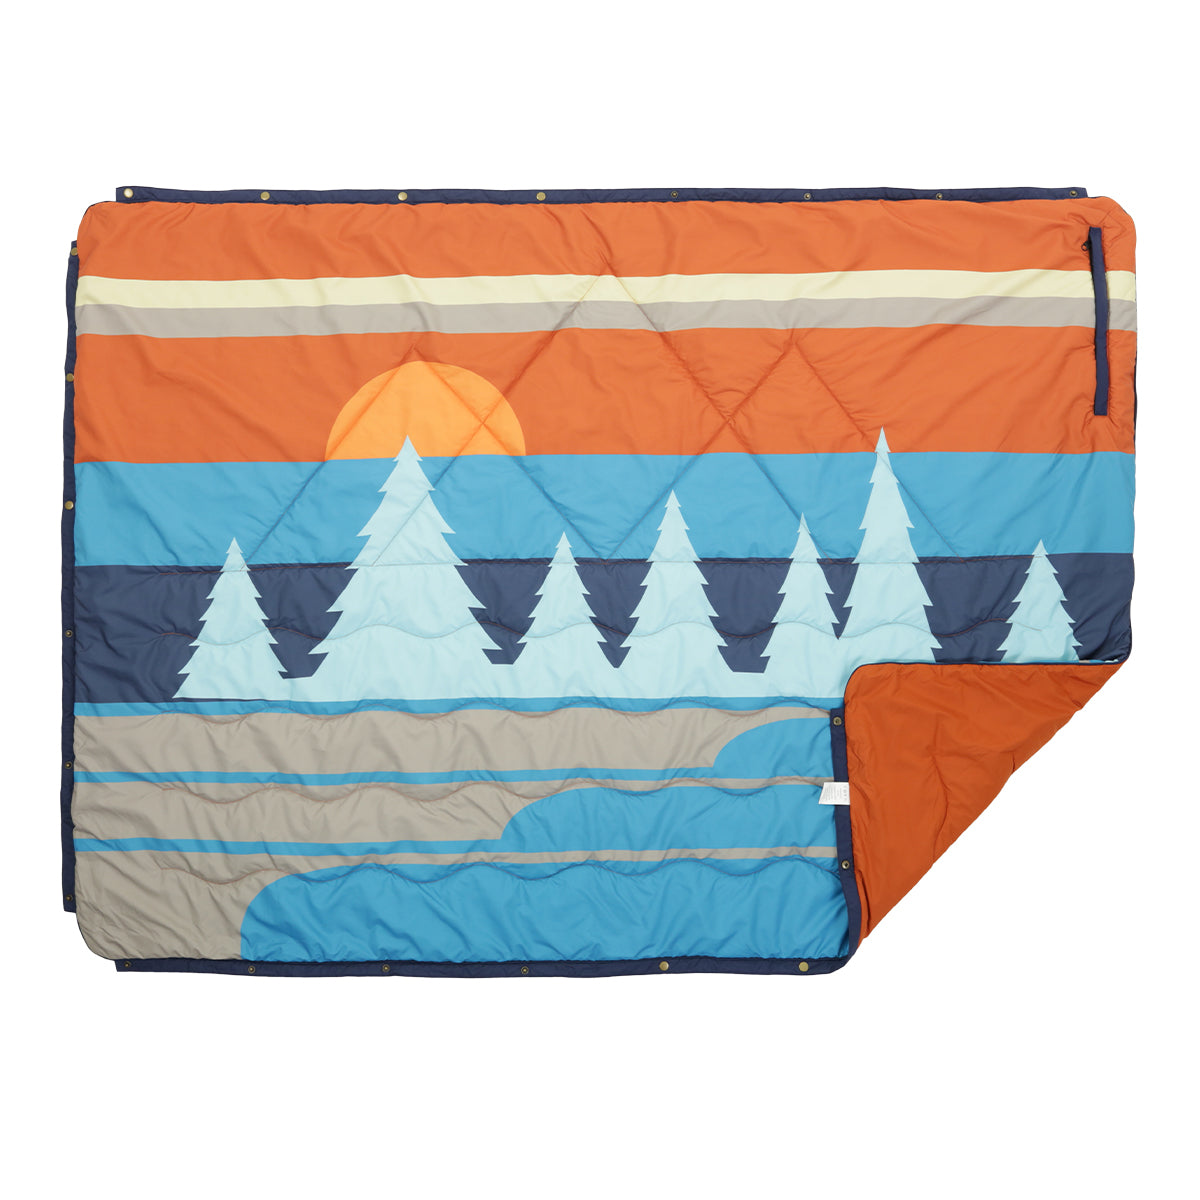 Nomadics 1 Person Insulated Blanket - Rust image 1